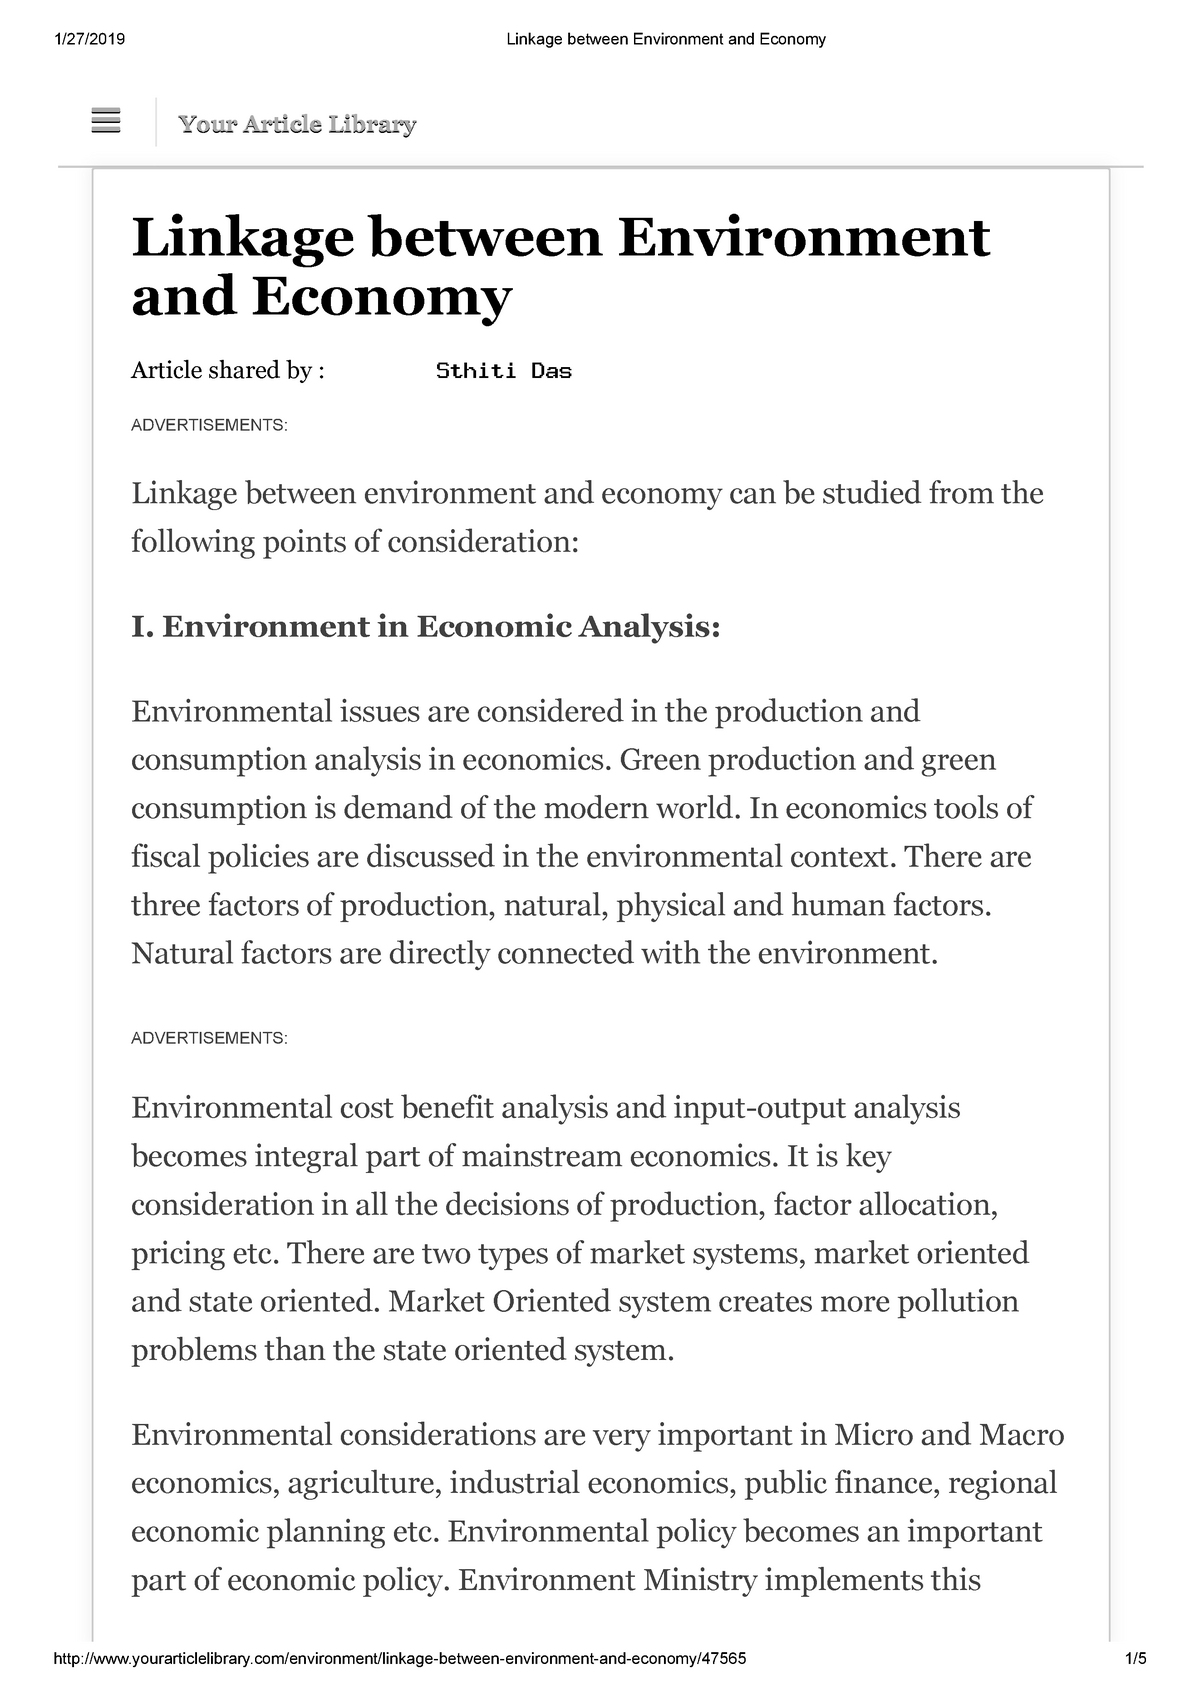 Regional Environmental Policy: The Economic Issues